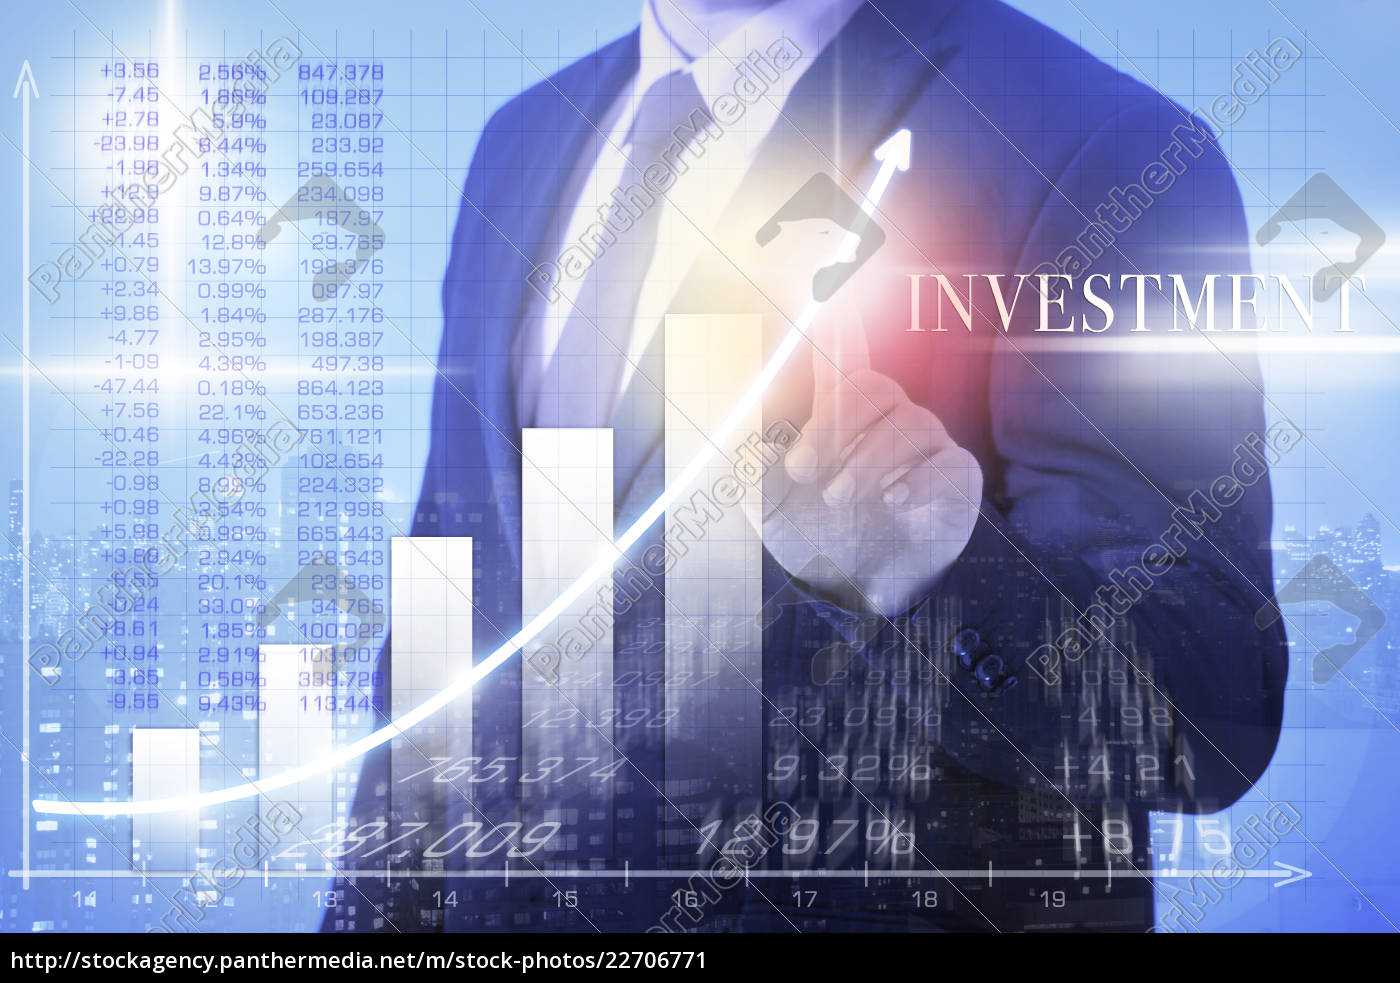 business, man, investment - 22706771